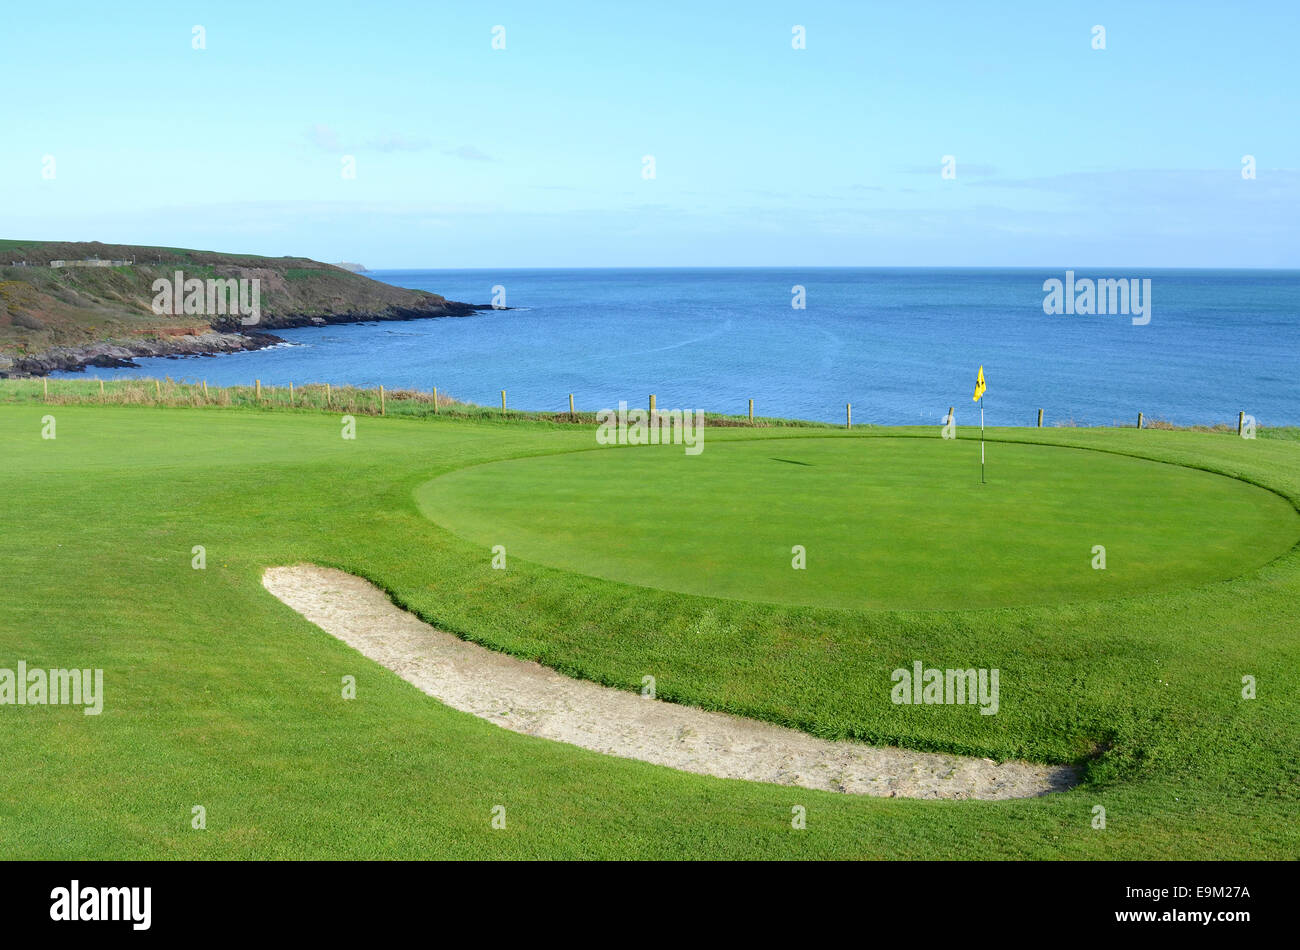 Golf course on the Irish coast near Trabolgan. - Stock Image